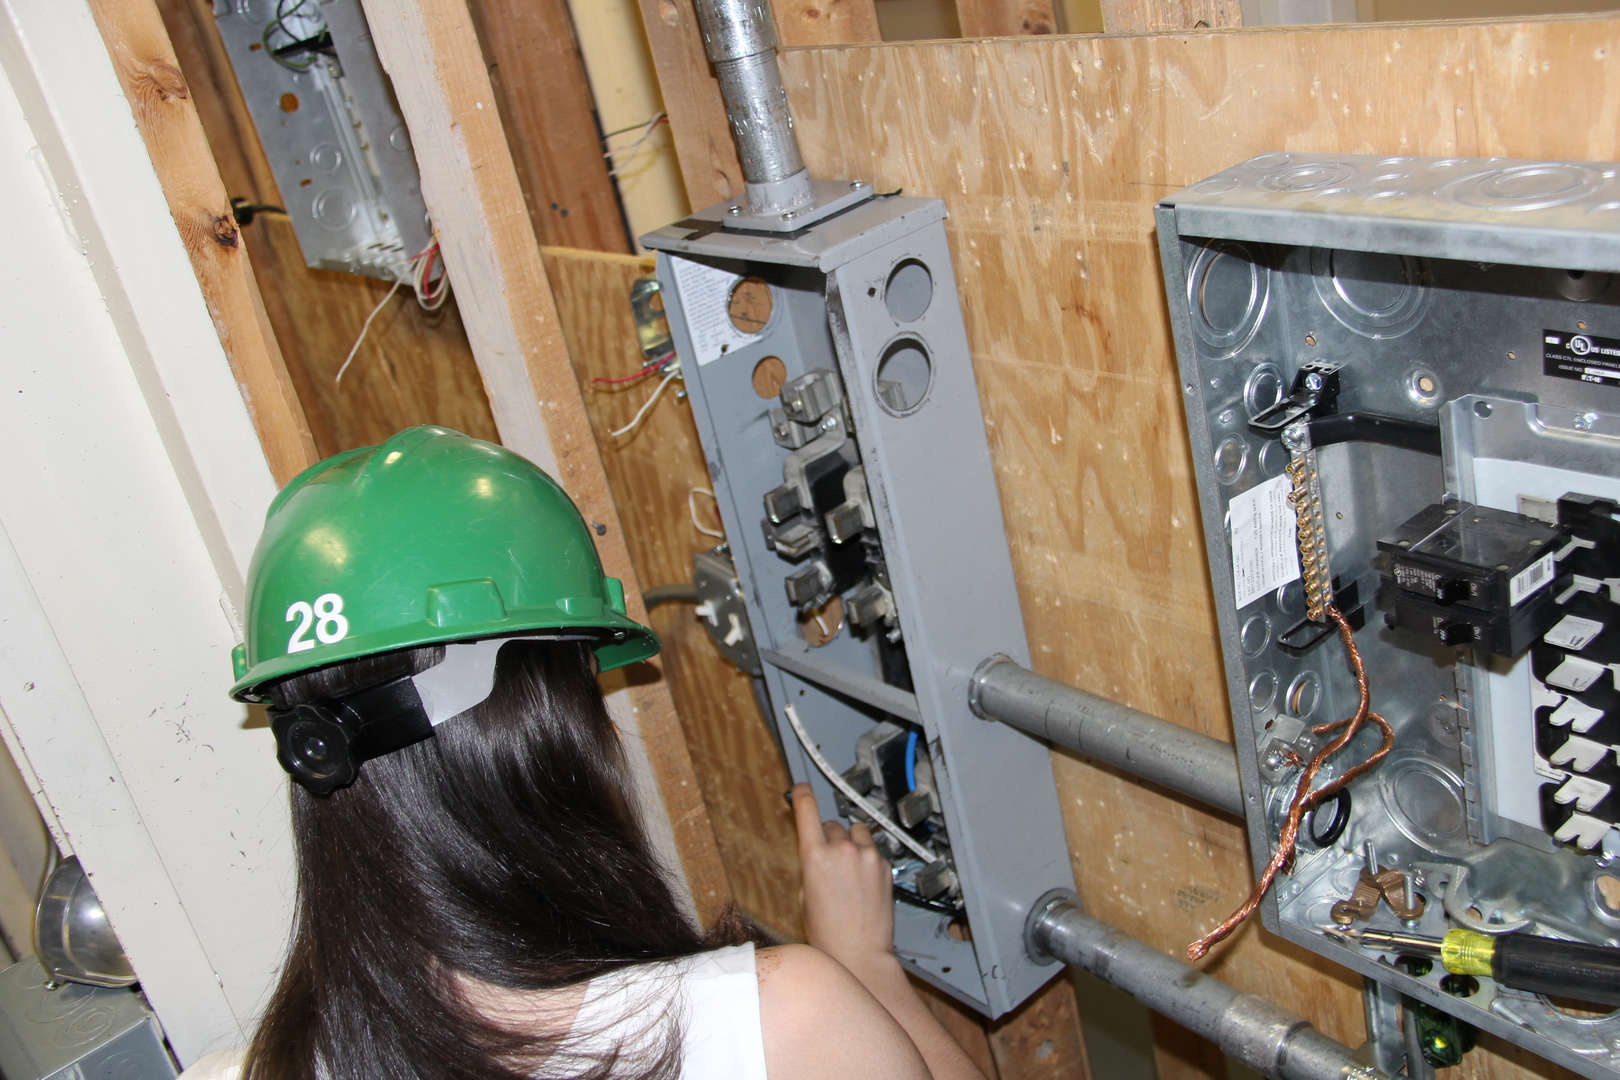 Student working on an electrical panel box